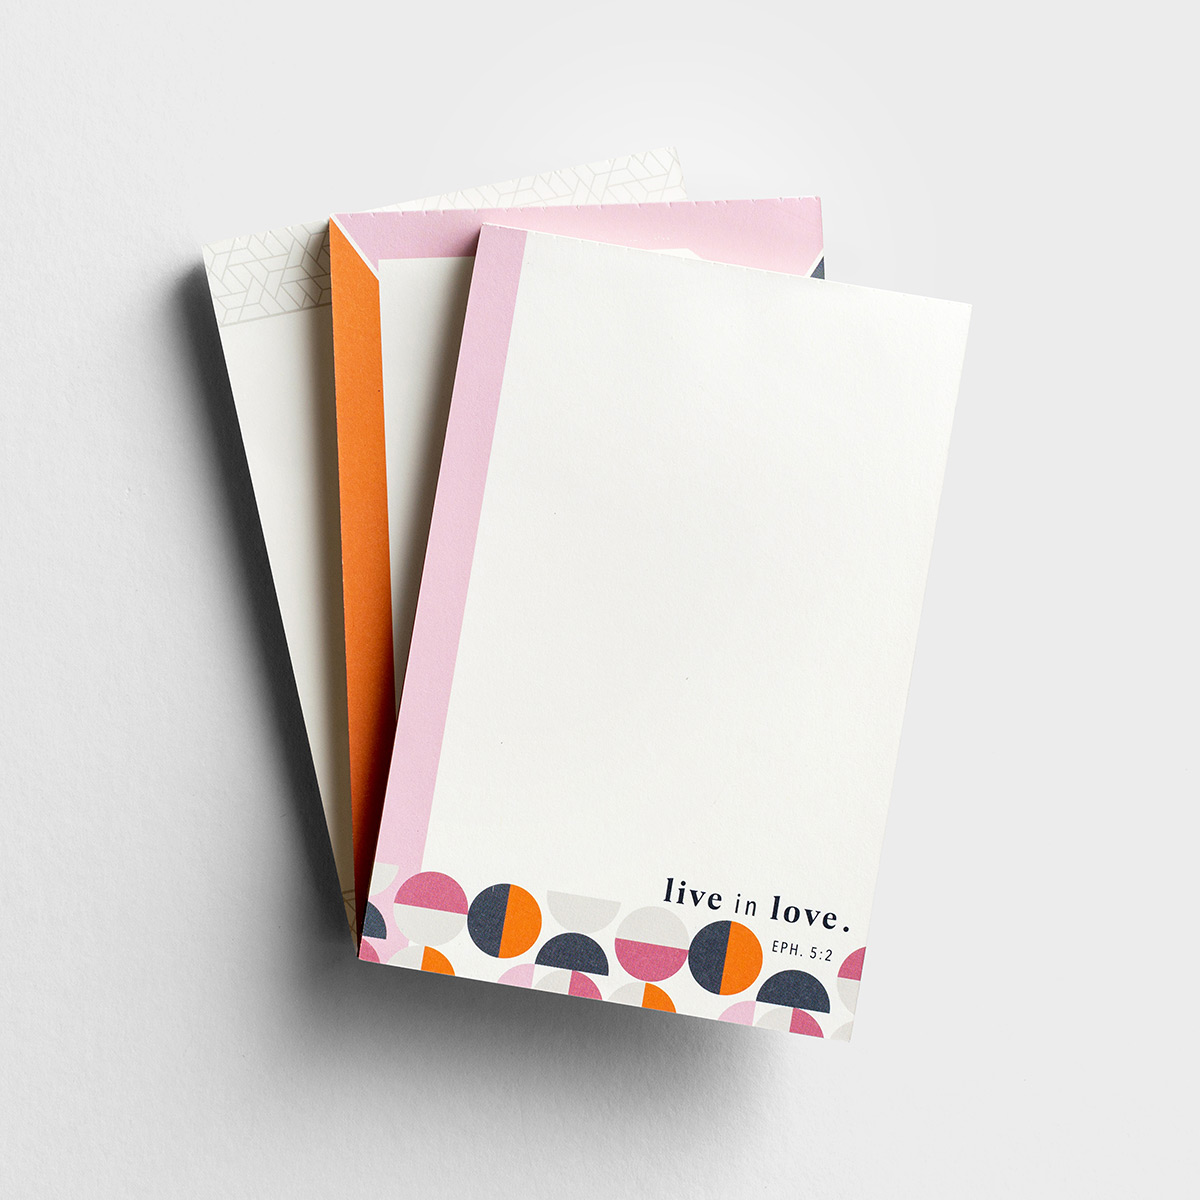 Candace Cameron Bure - Live in Love - Note Pads, Set of 3